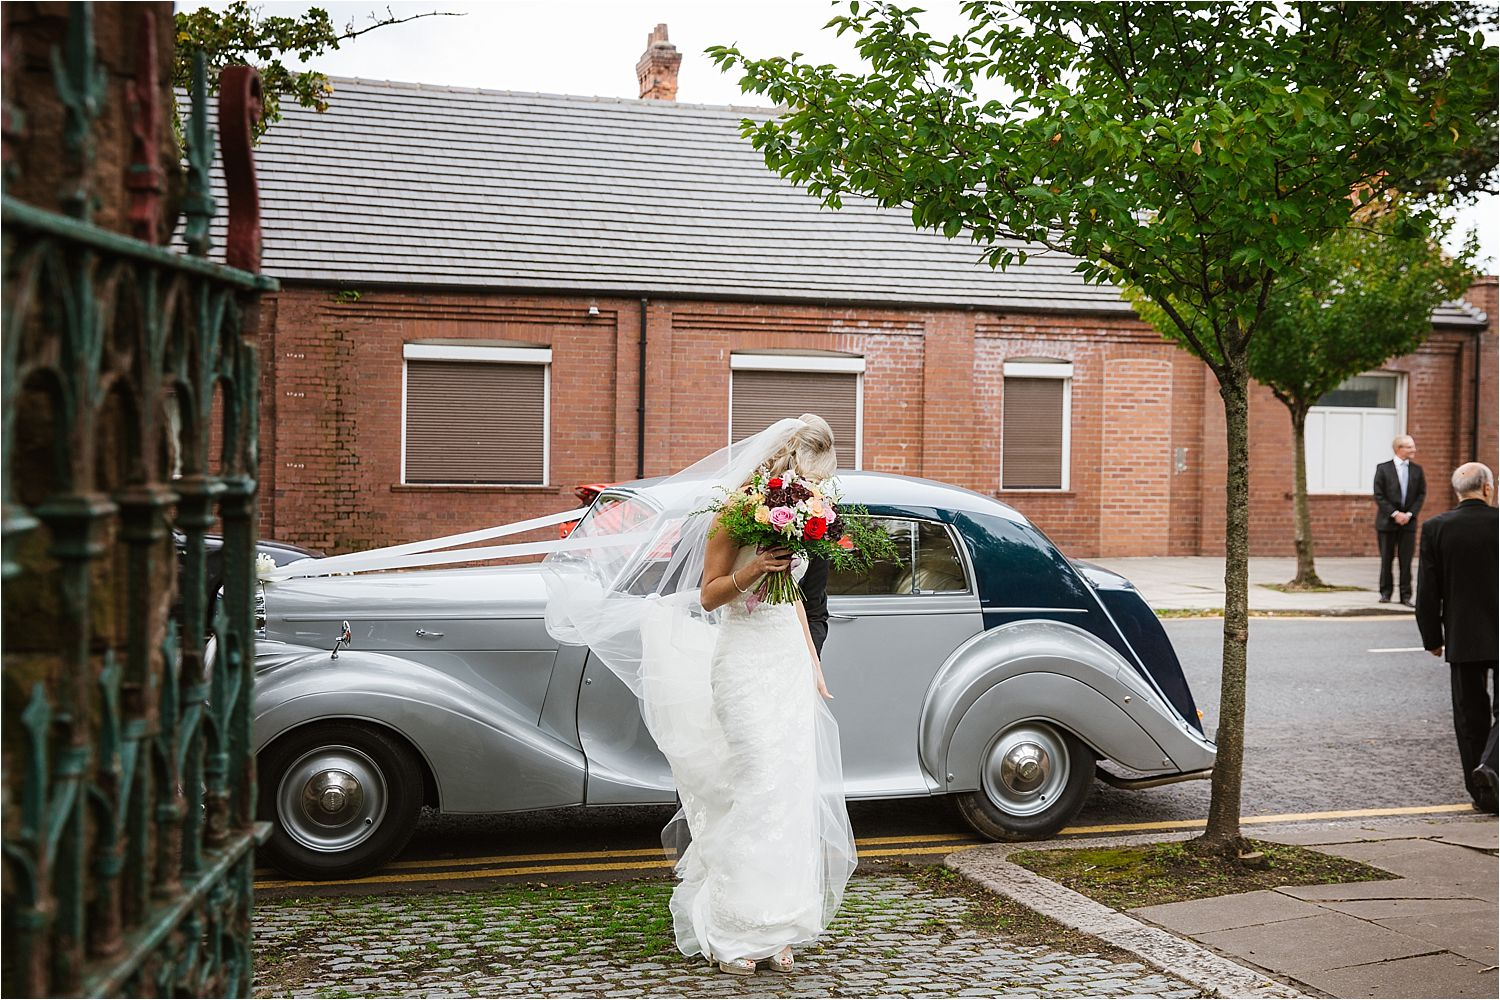 Bride arrives in wedding car by John Wilson from Walney, flowers by Deborah's florist, Barrow